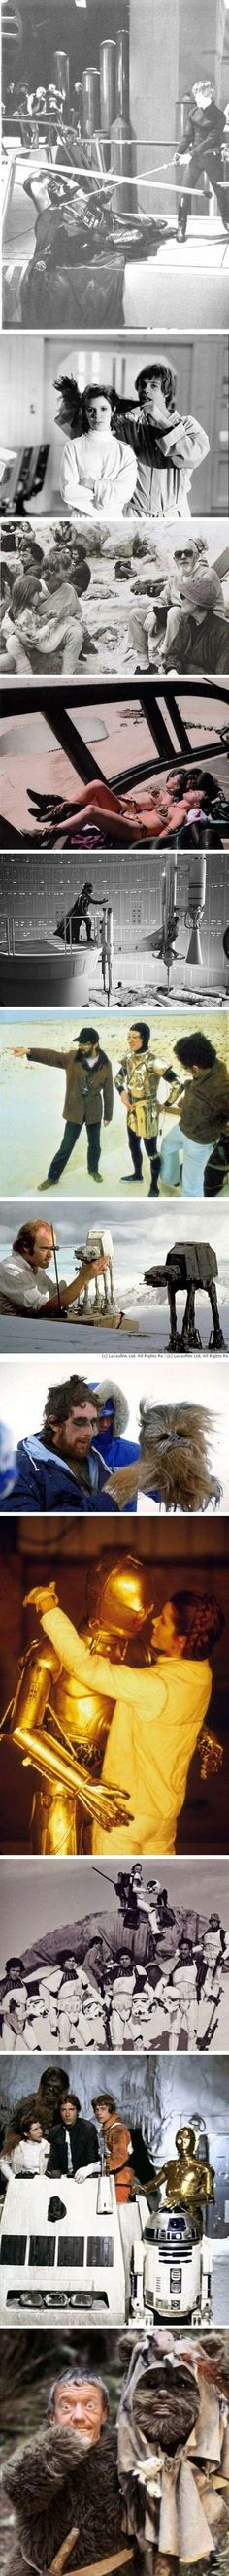 Star Wars ( Episodes IV - VI) behind the scenes